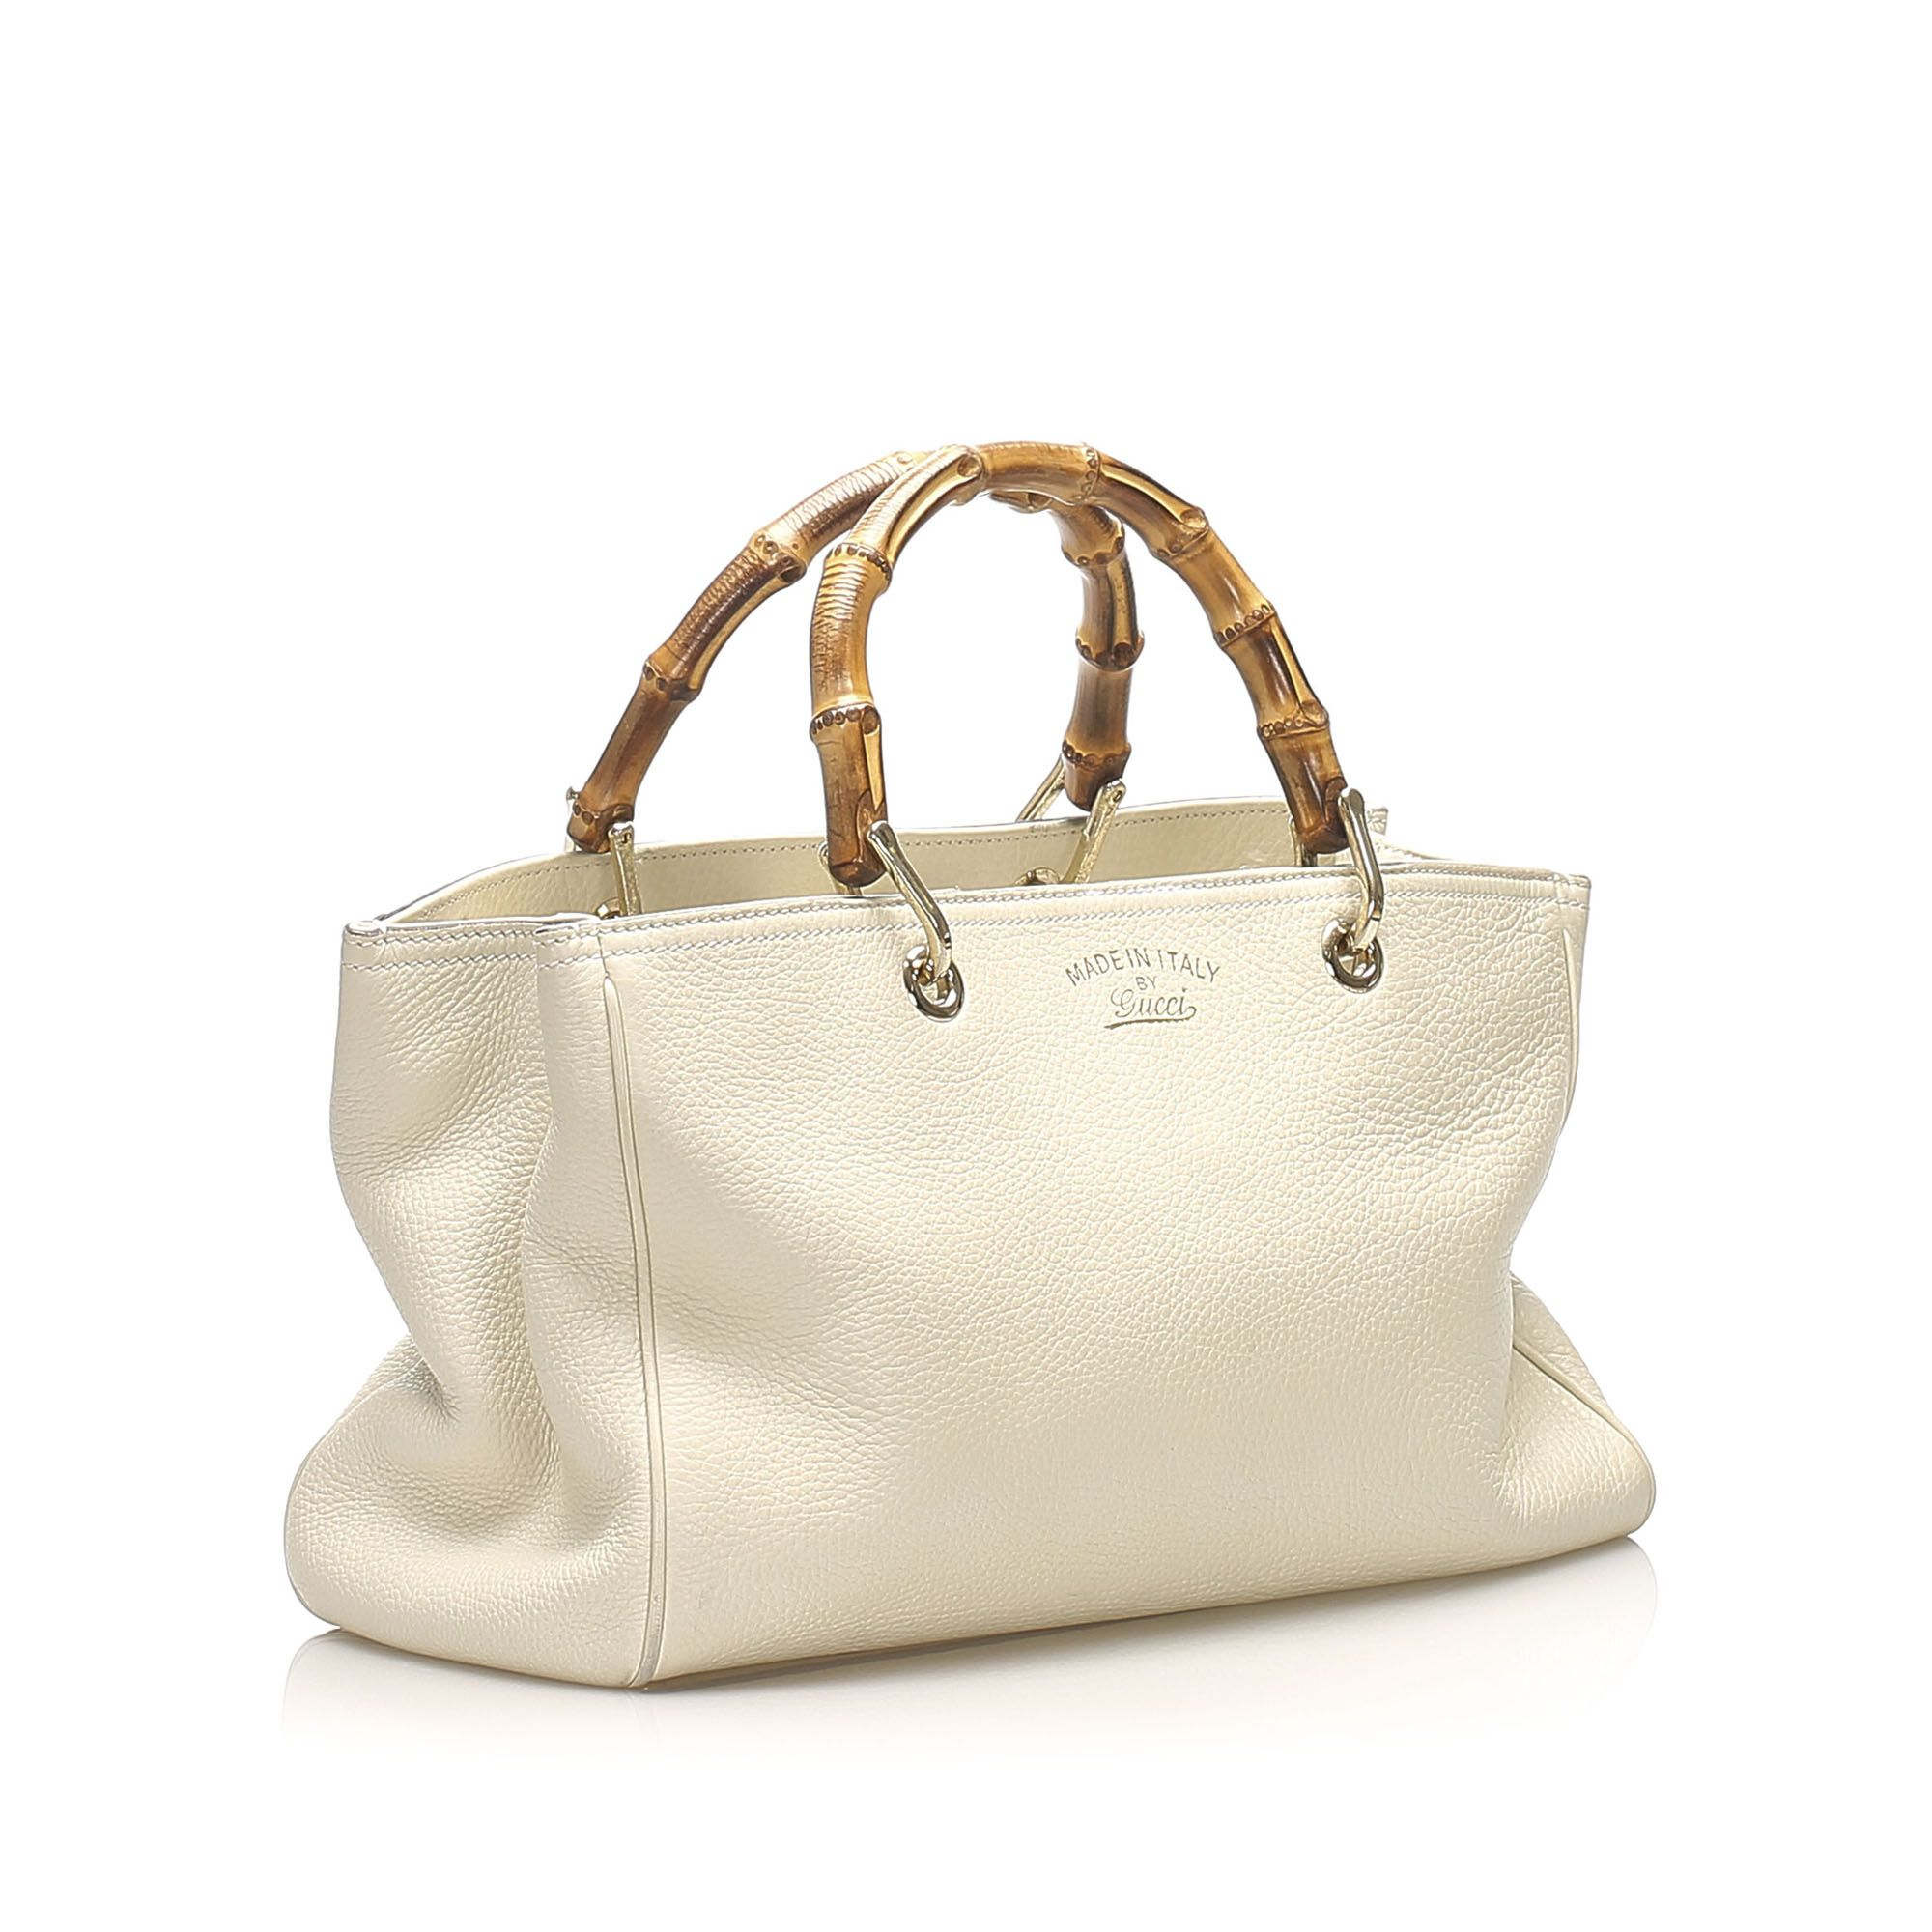 Vintage Gucci Bamboo Shopper Leather Satchel White